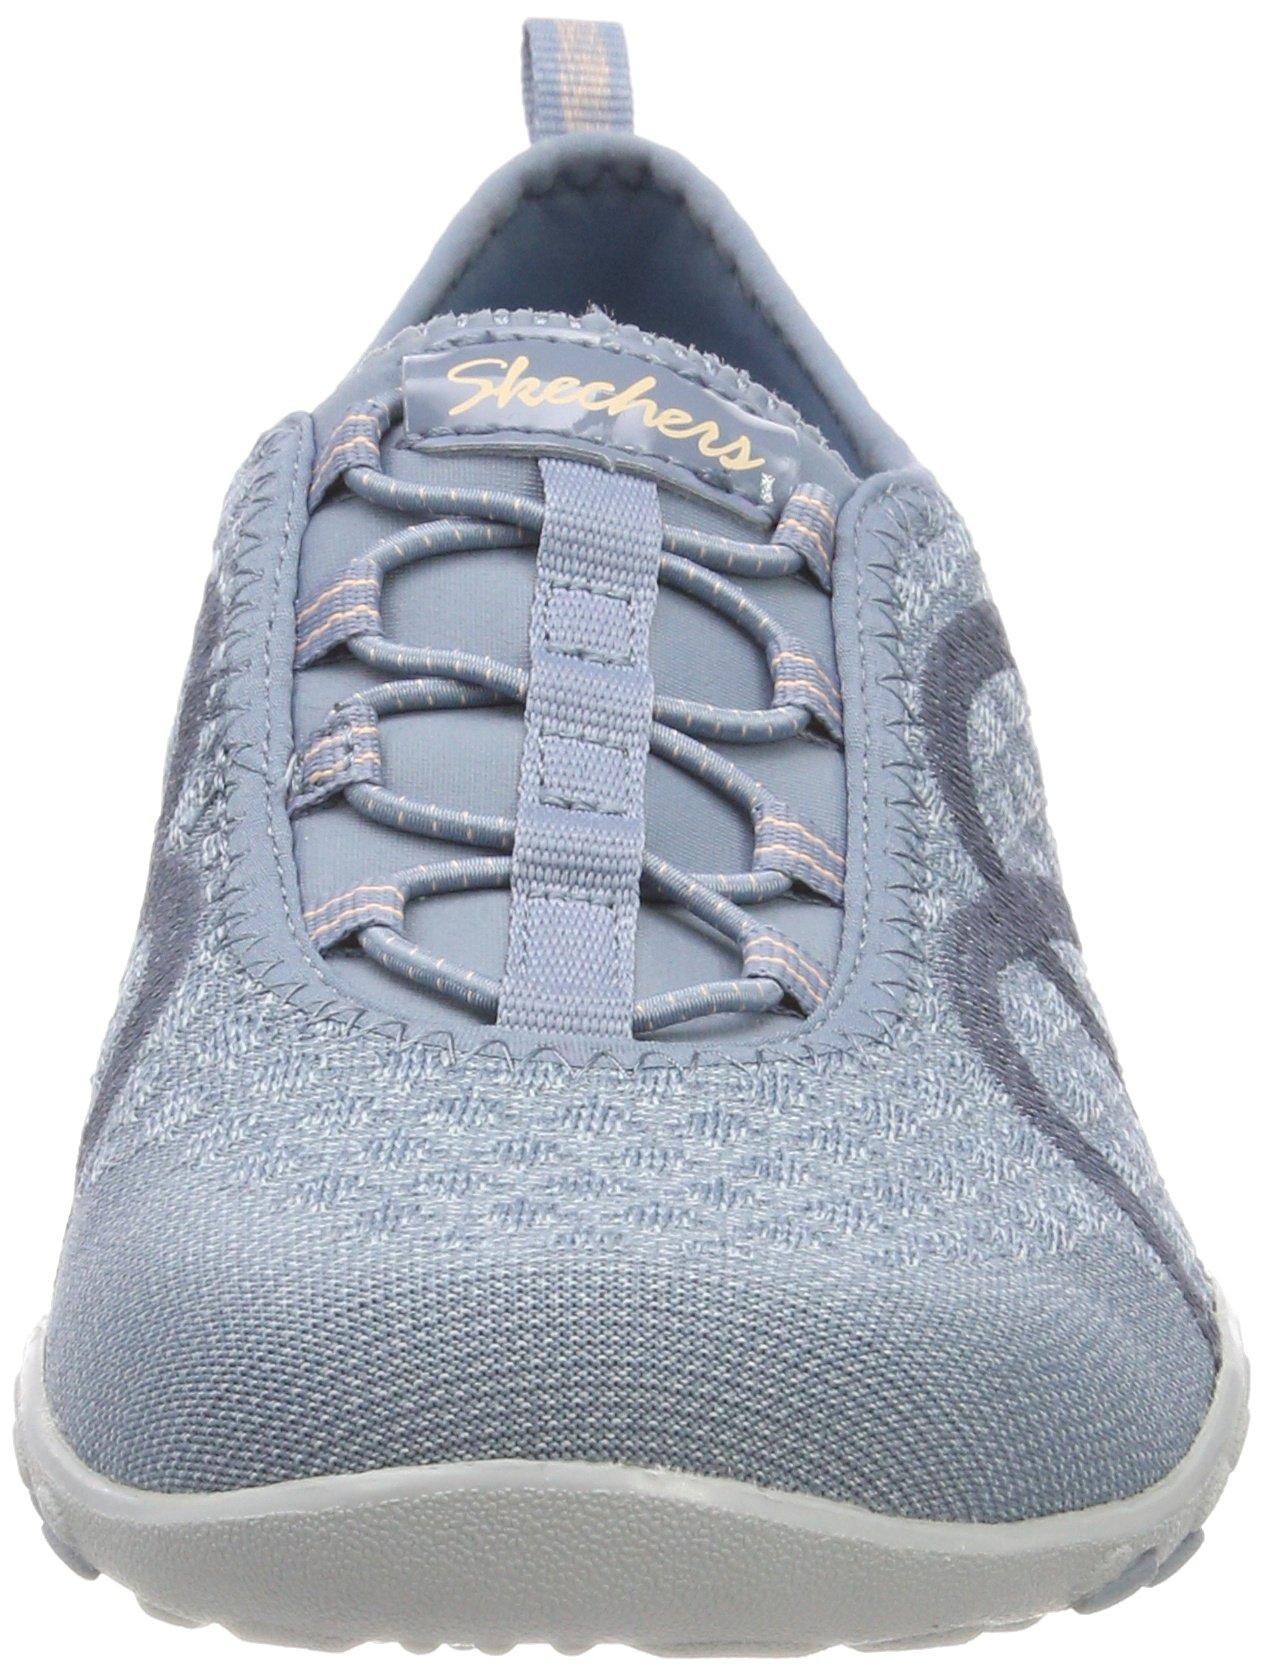 Skechers Relaxed Fit Breathe Easy Fortune Knit Womens Bungee Sneakers Blue 8 by Skechers (Image #4)